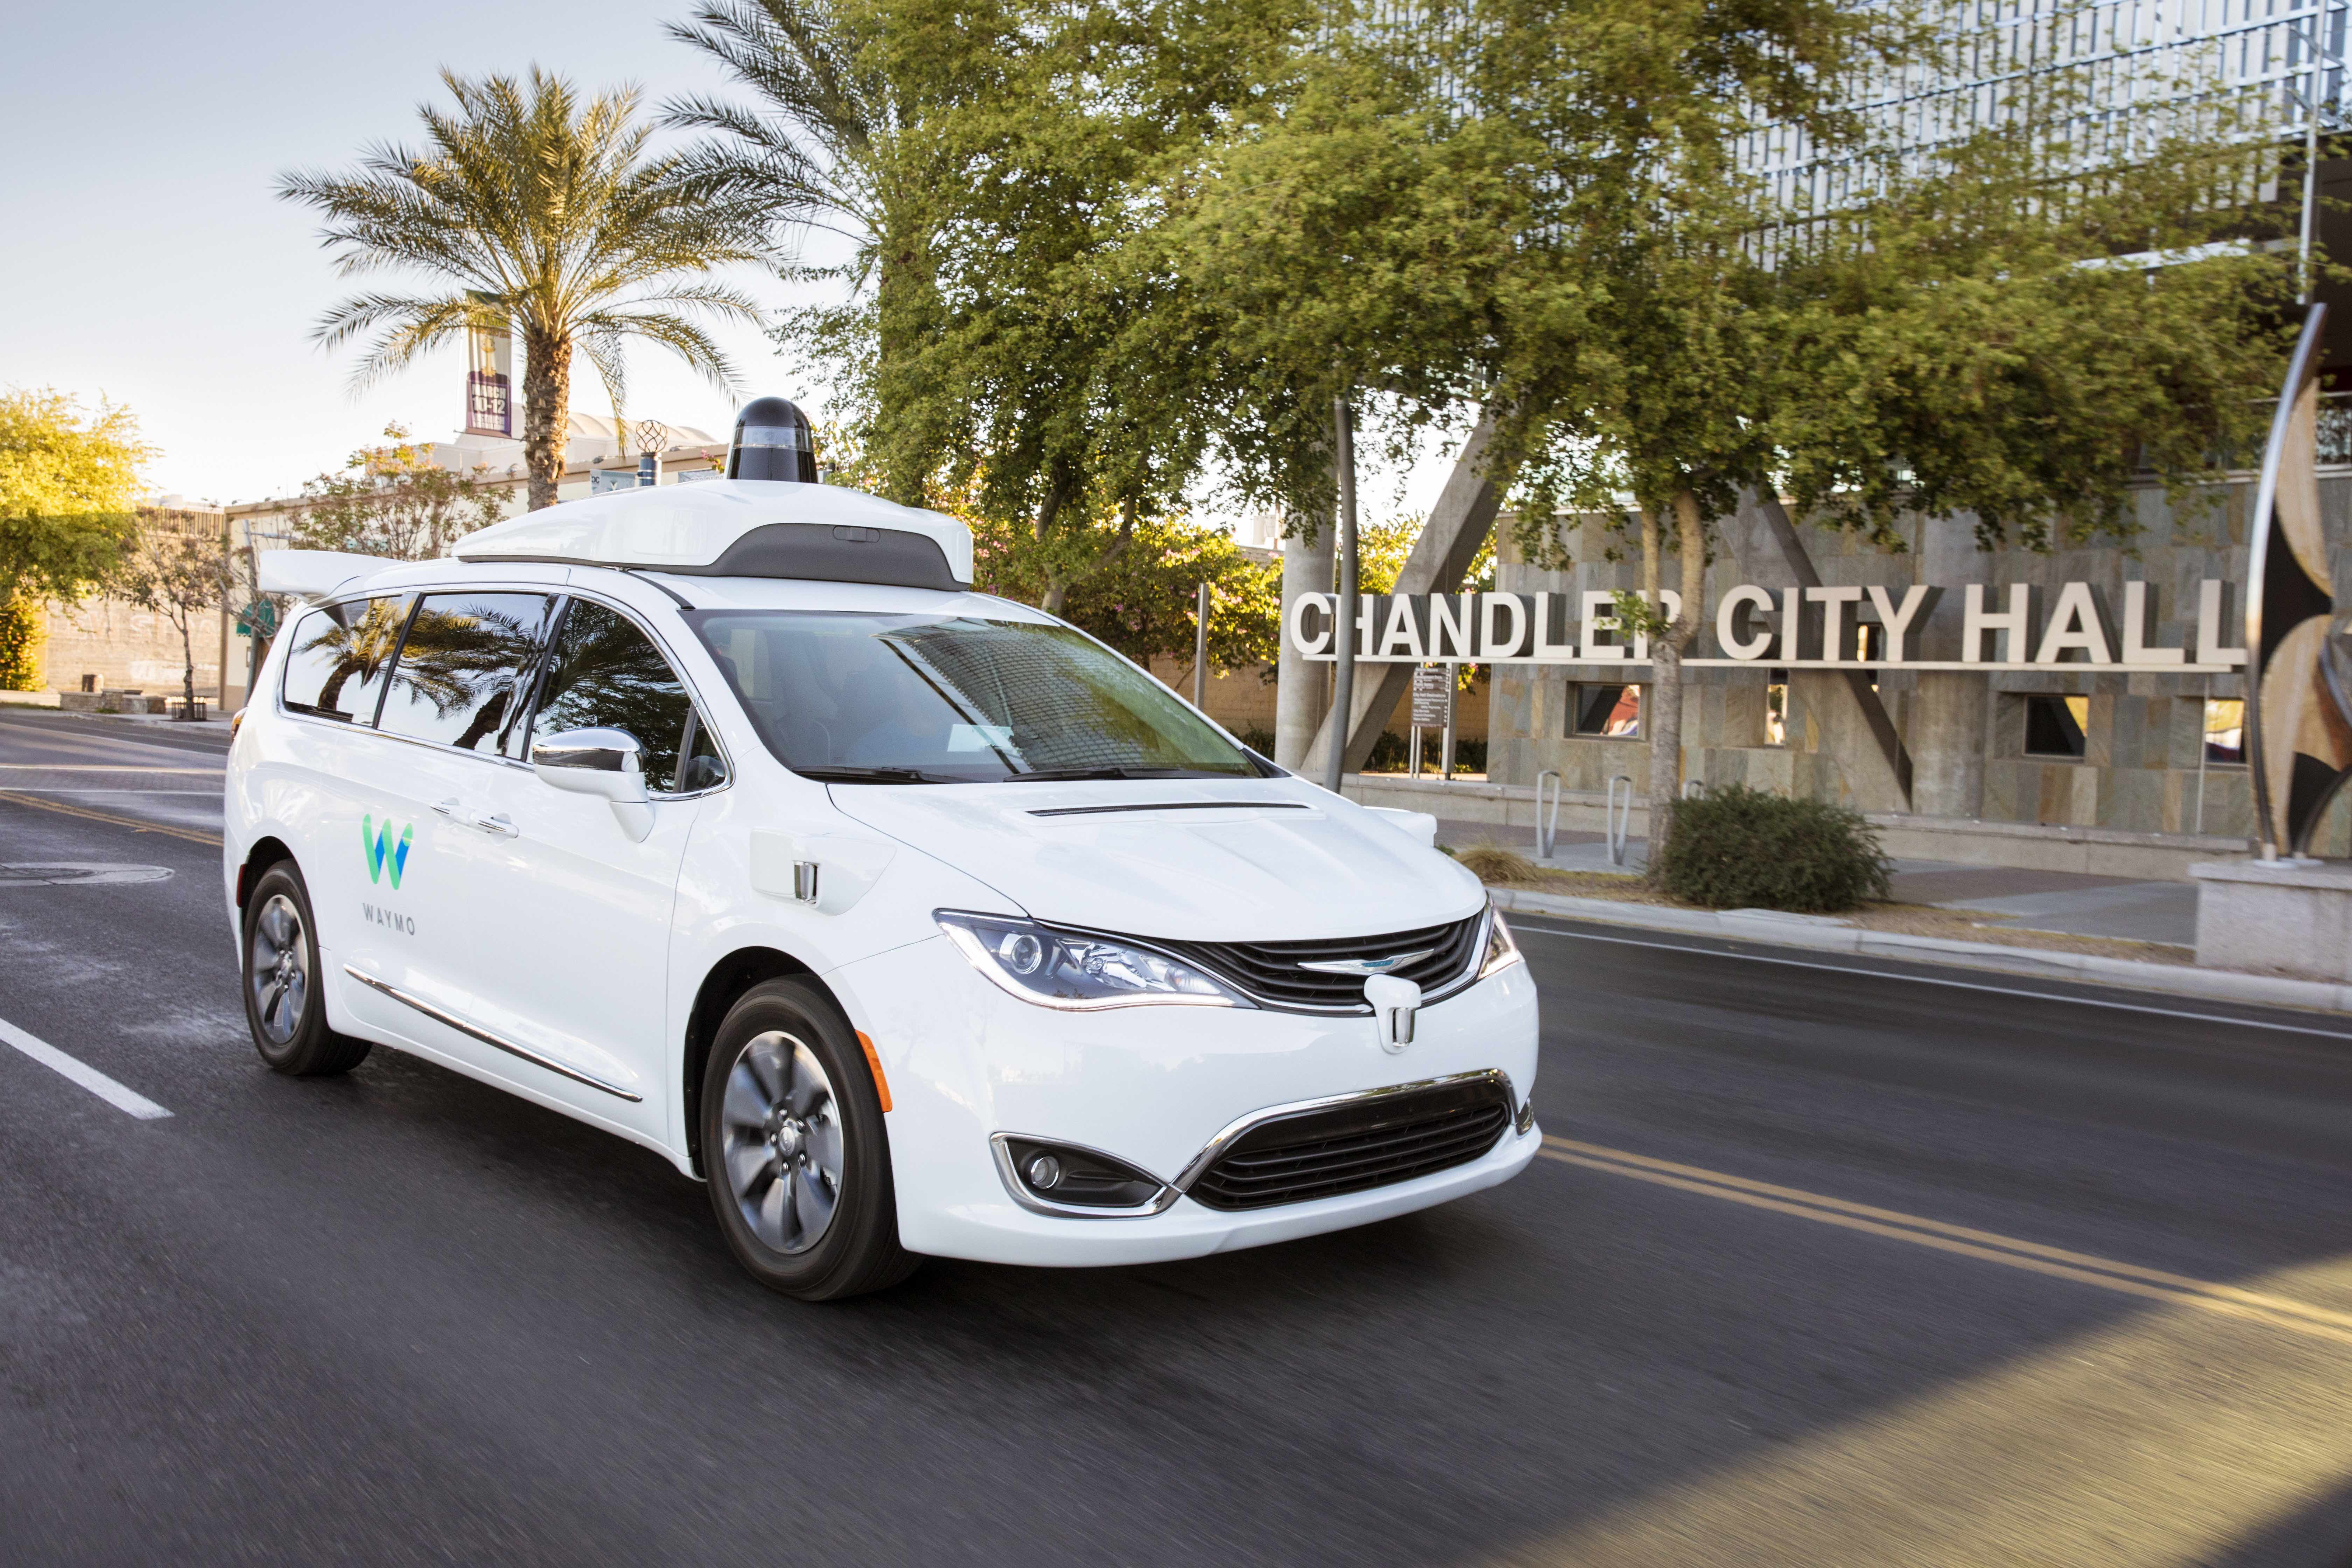 Alphabet's Waymo to launch robotaxis with no human in driver's seat